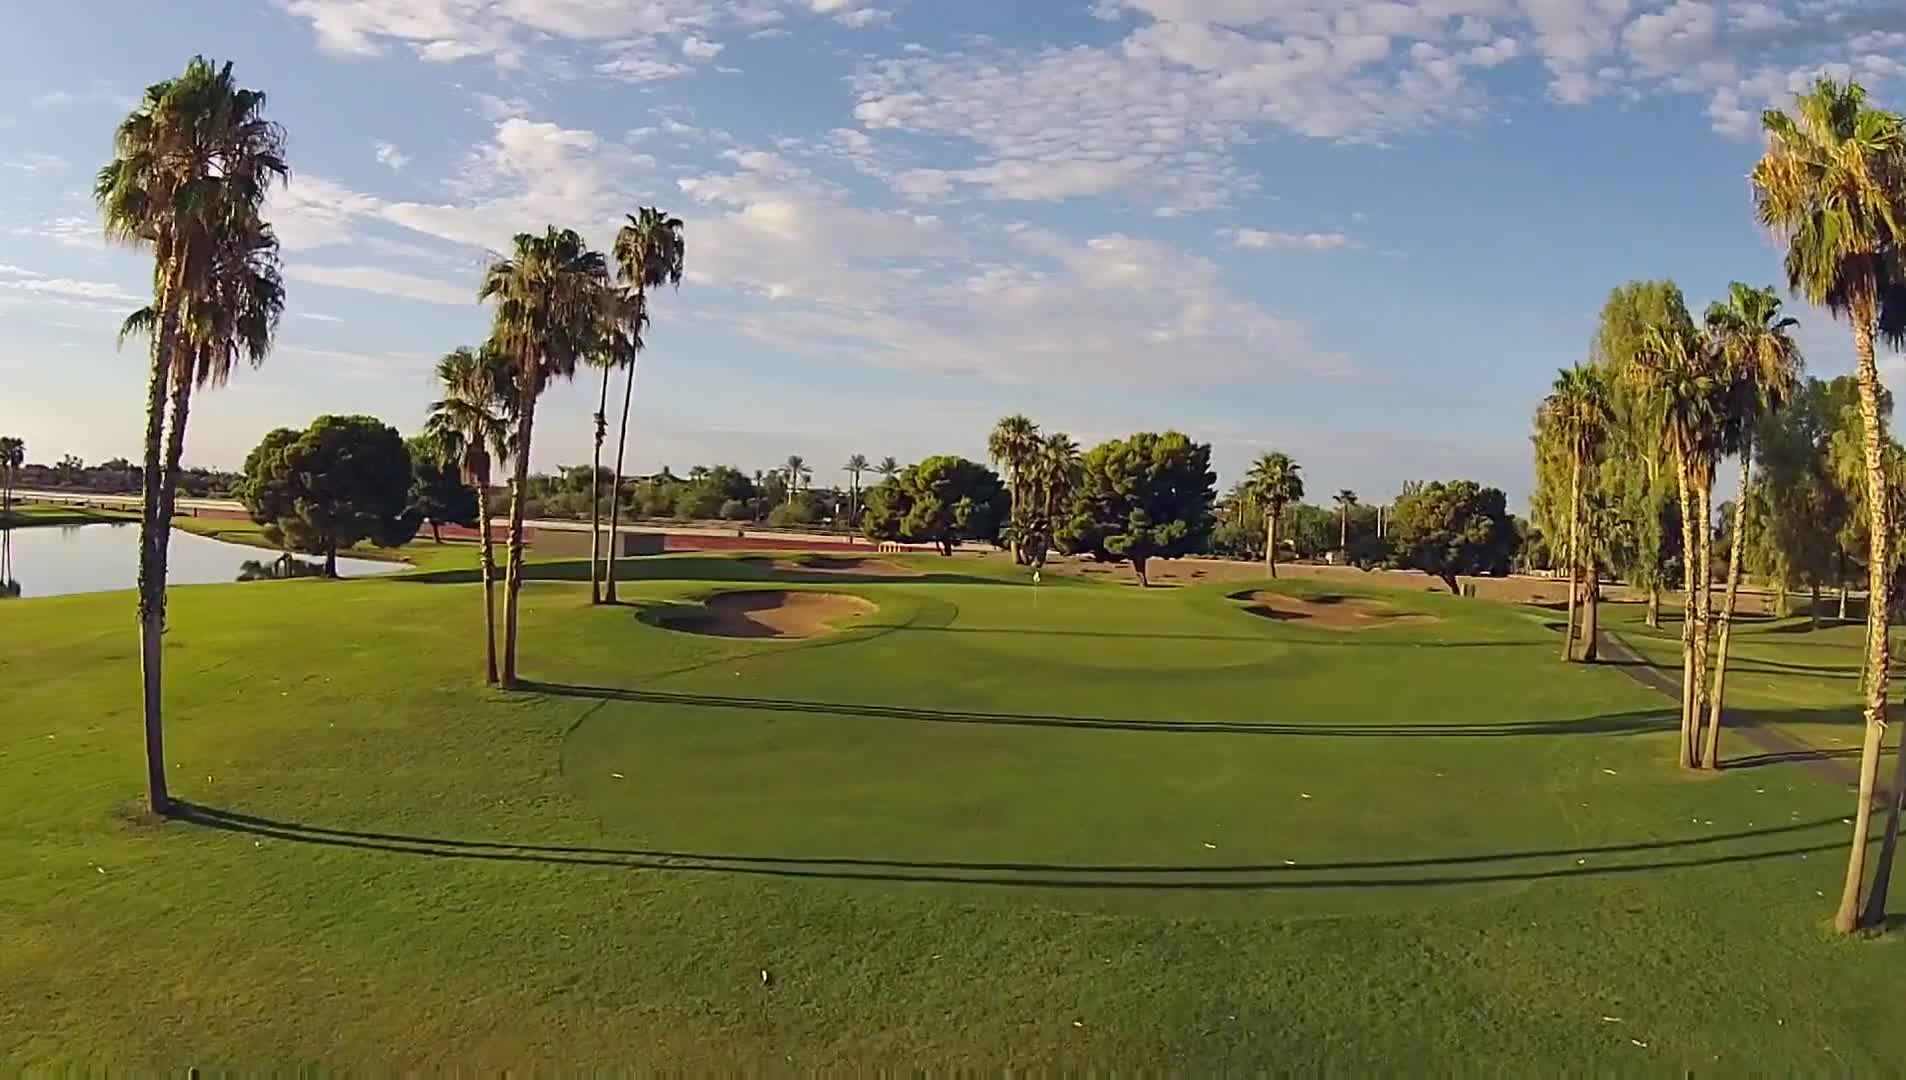 Golf course golfing grass palm trees vacations